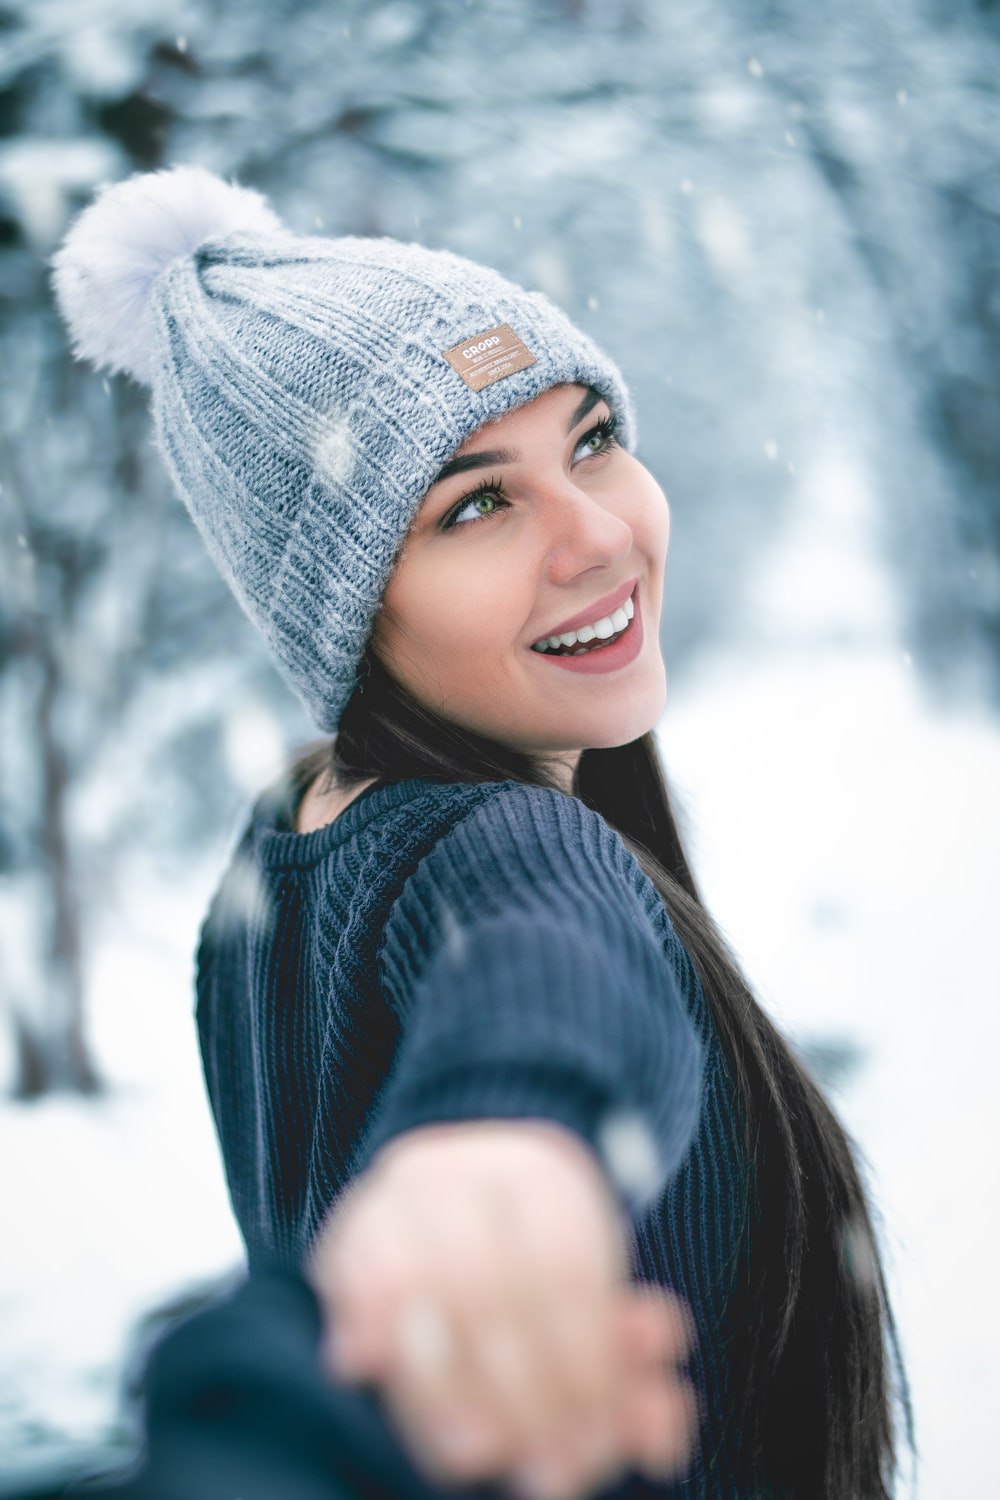 woman in blue knit cap and blue knit sweater smiling